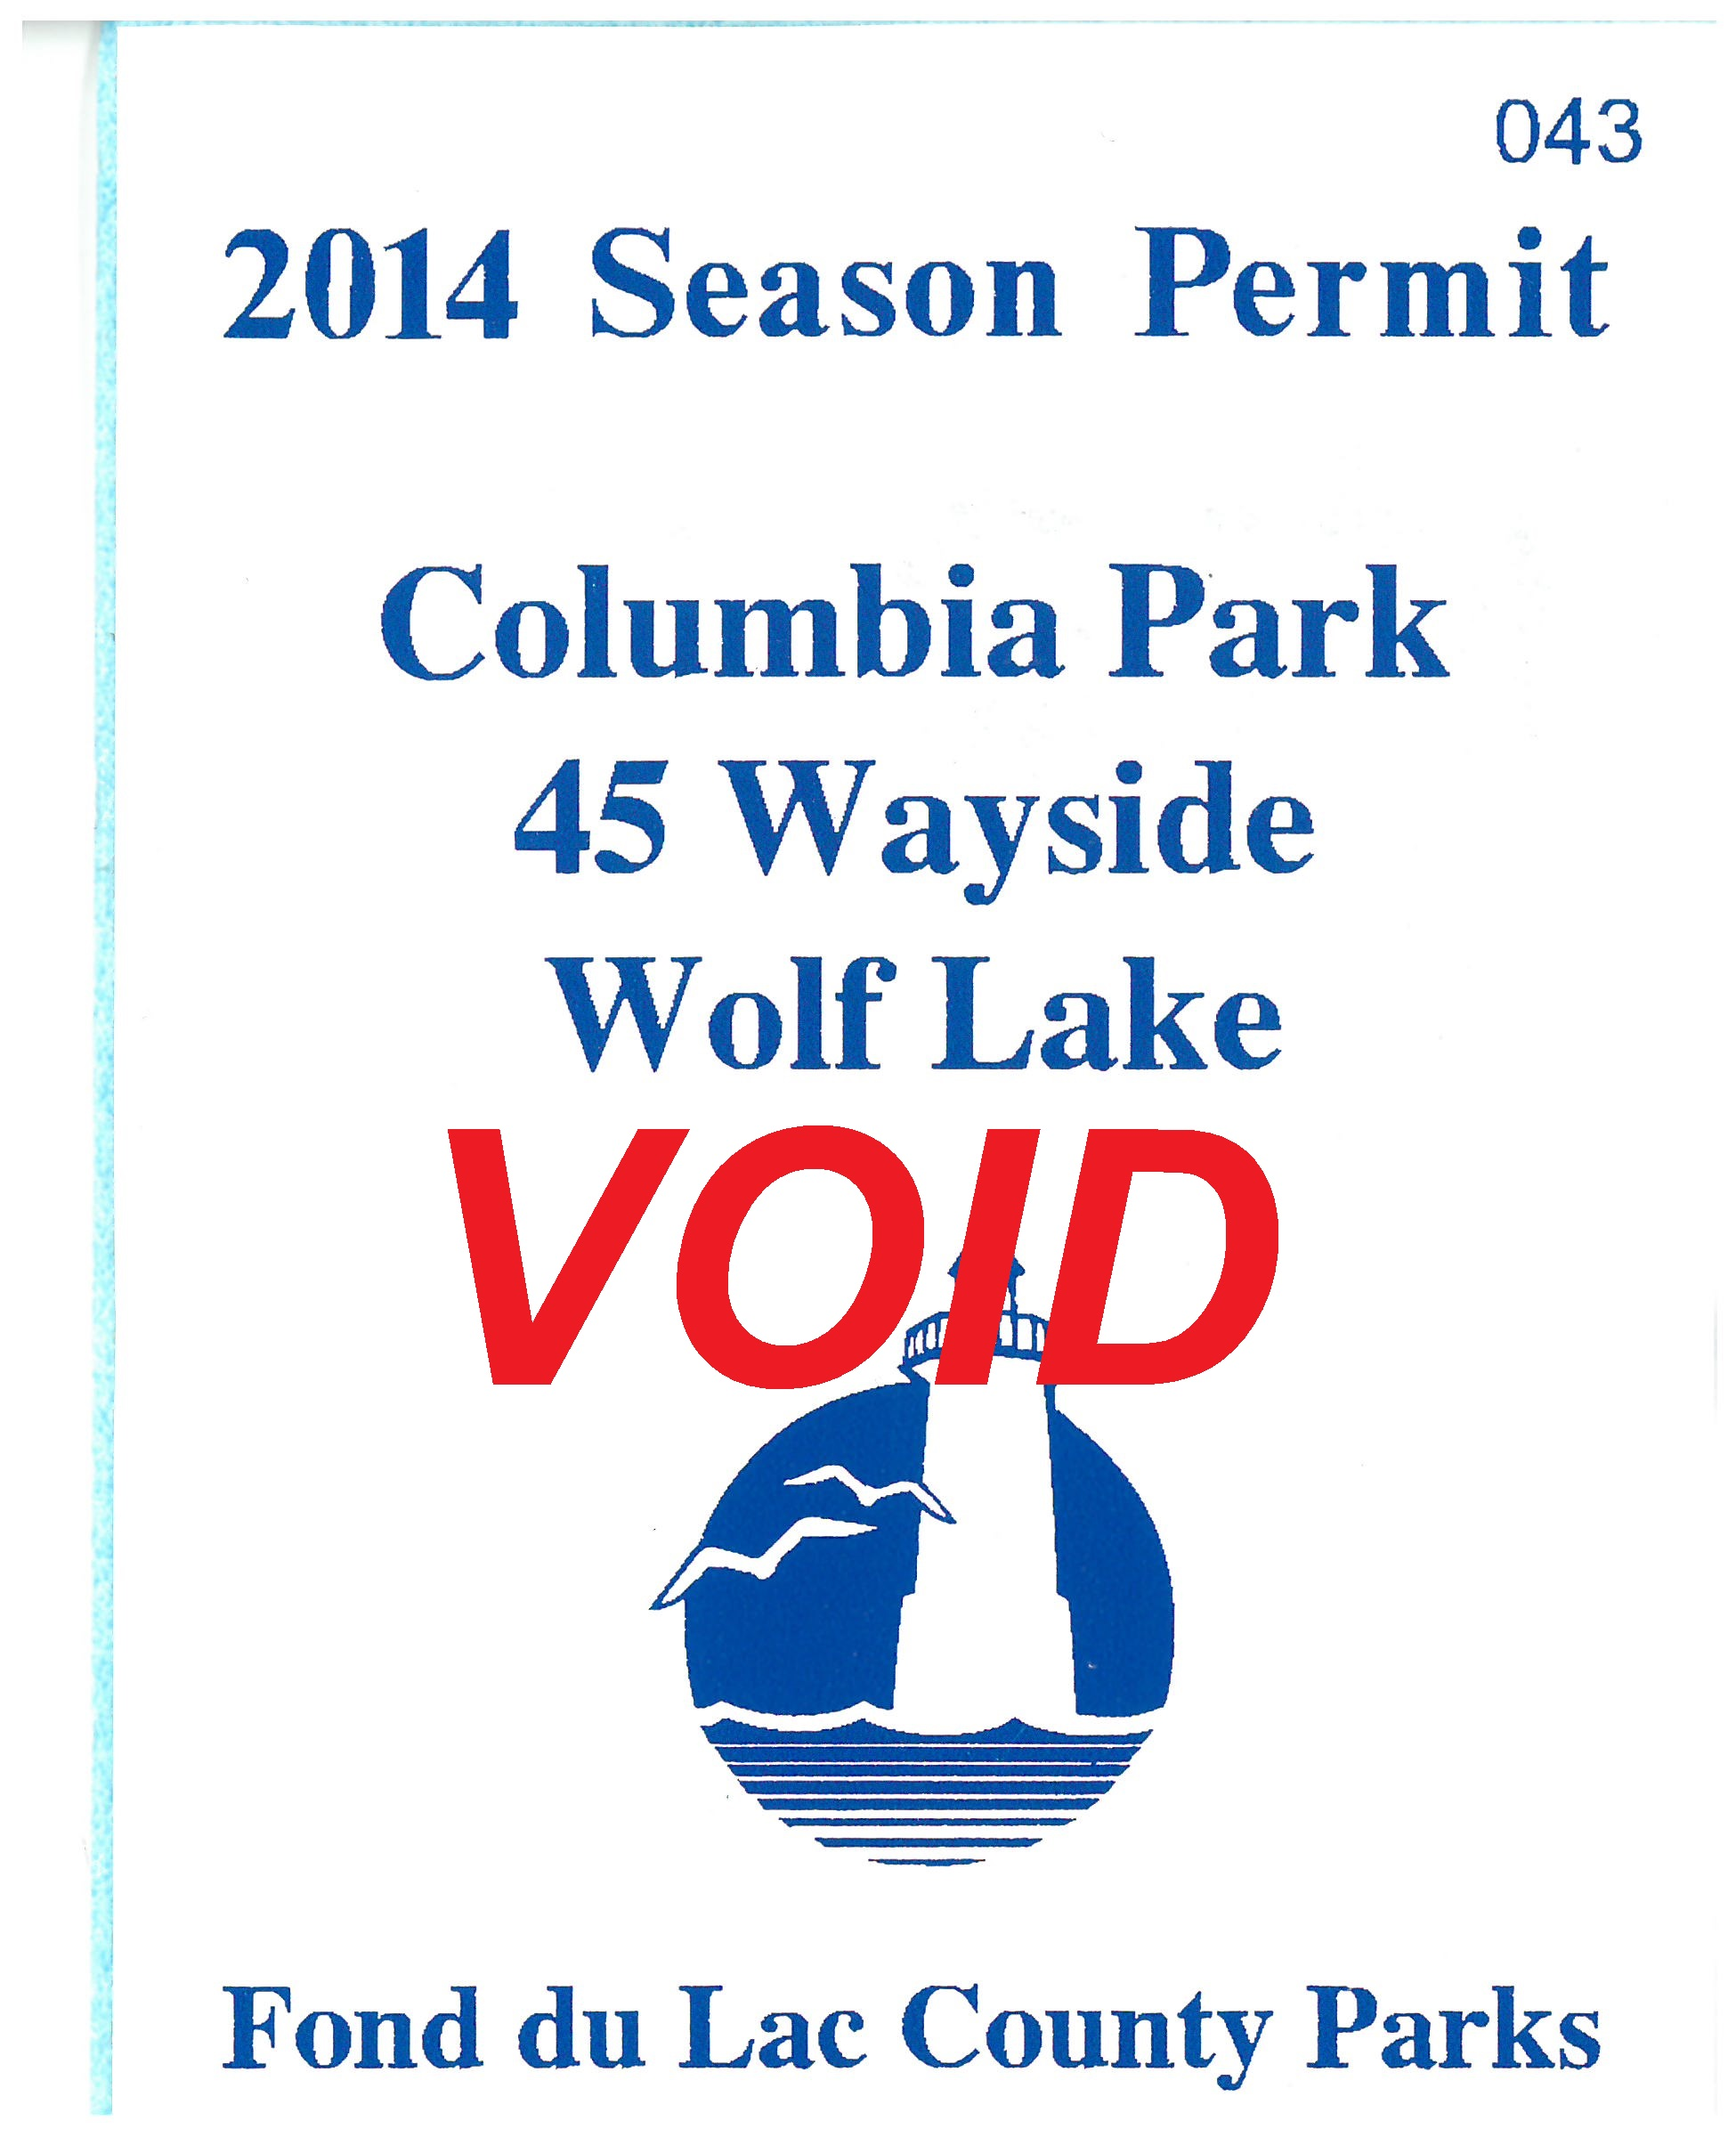 Fond du Lac County Boat Launch Permit